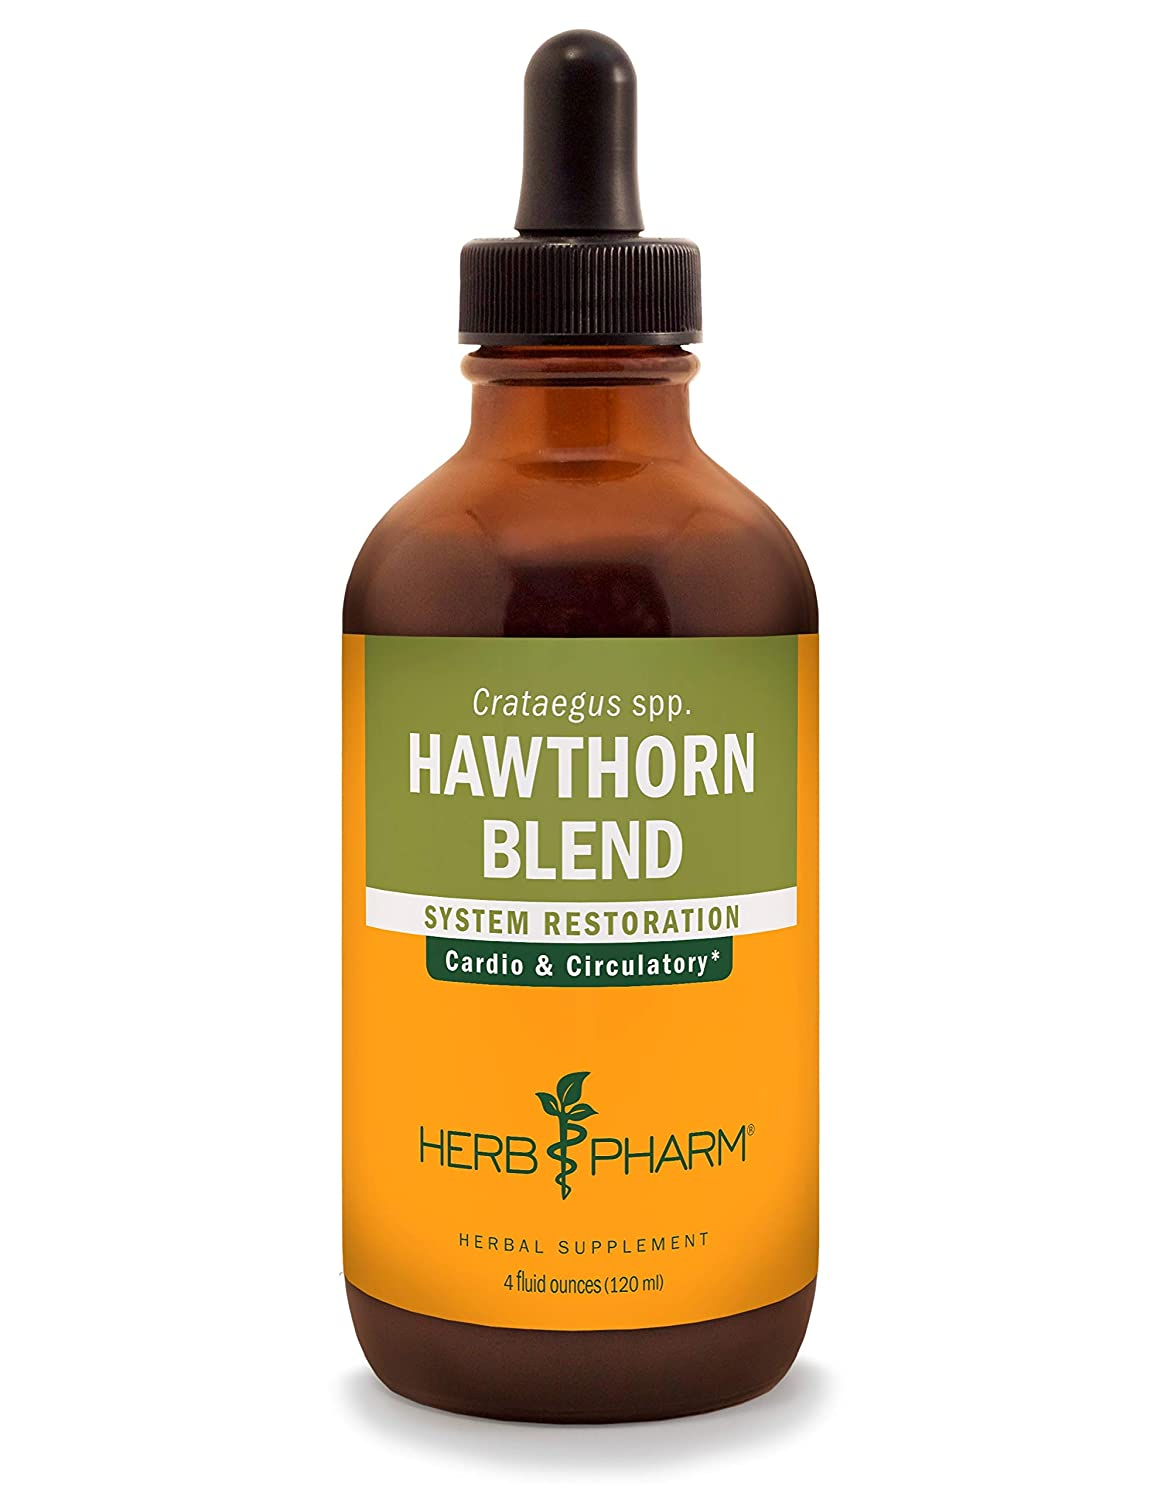 Herb Pharm Hawthorn Blend Liquid Extract for Cardiovascular and Circulatory Support – 4 Ounce